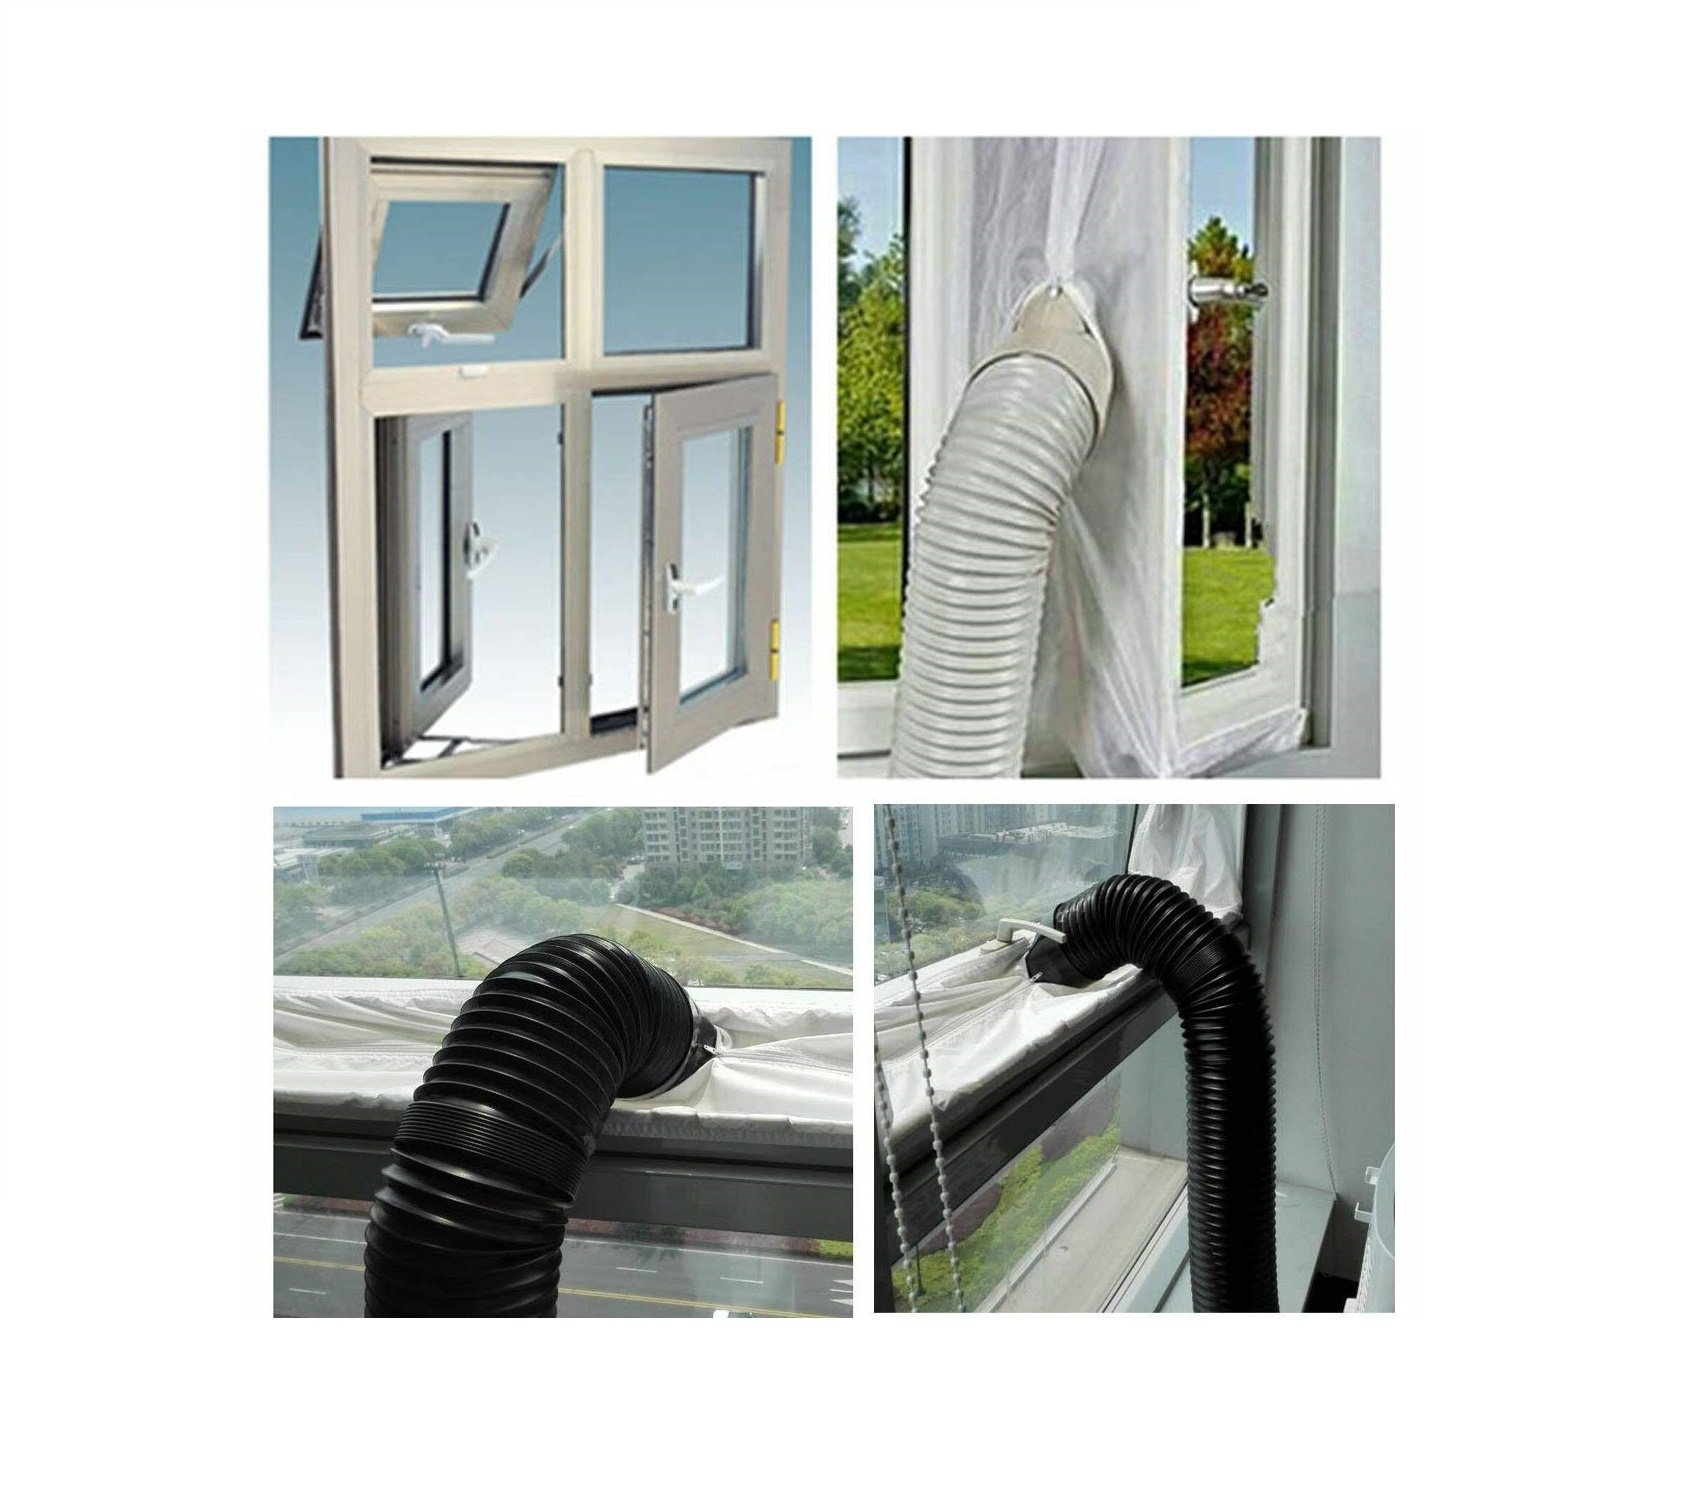 Aimyoo AirLock Window Door Seal - Soft Cloth Sealing Baffle for Mobile Air-Conditioning Units Mobile Air Conditioning